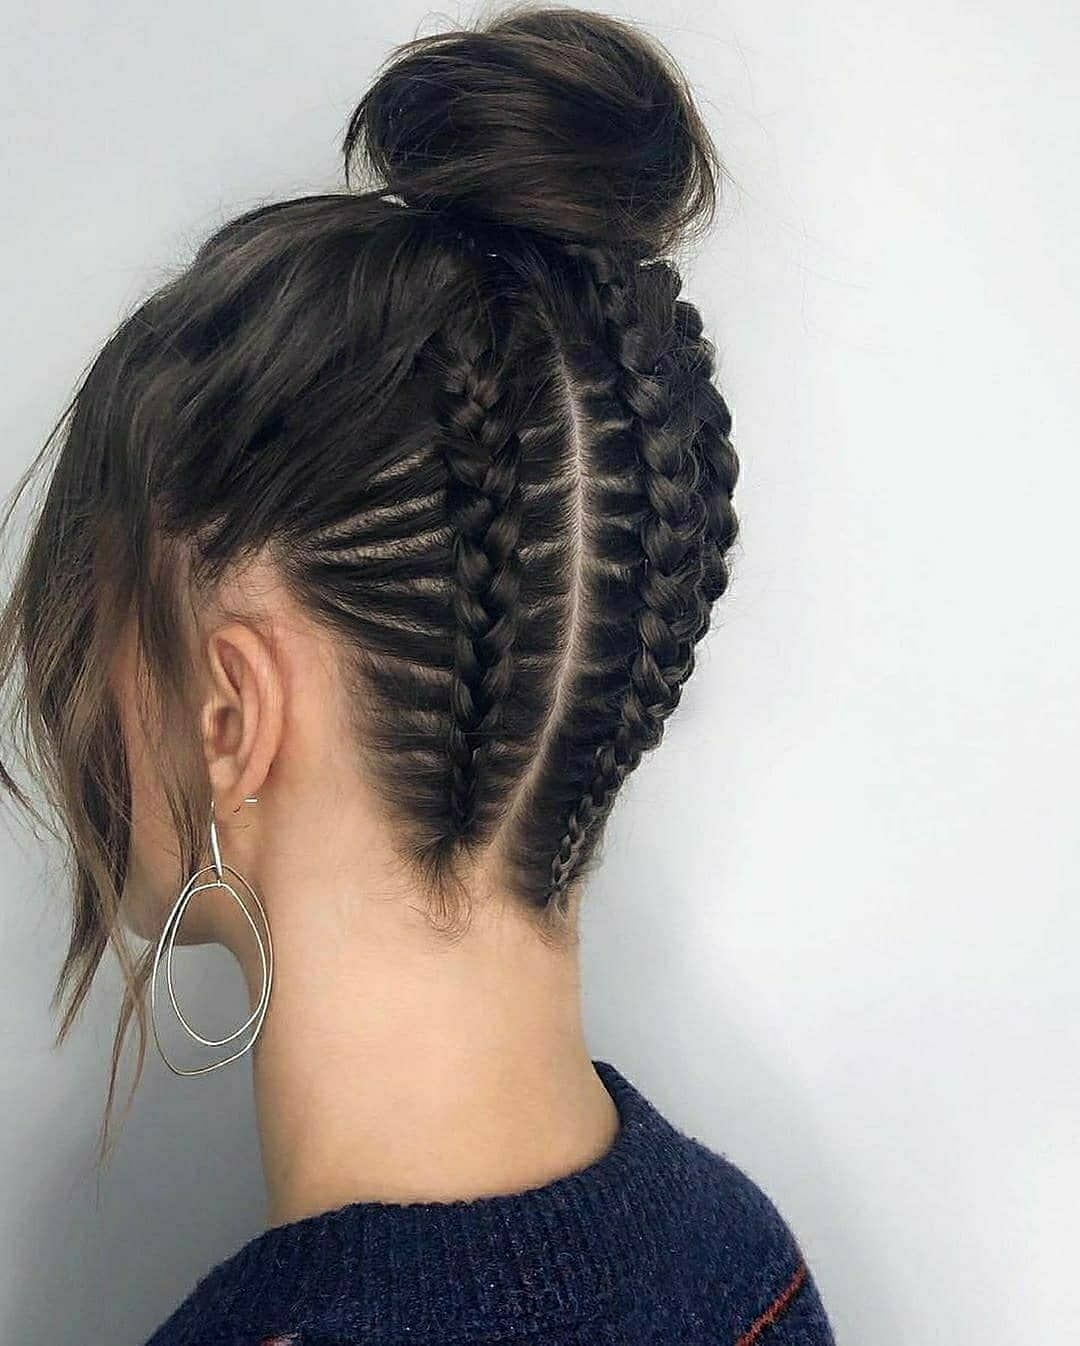 Image May Contain One Or More People And Closeup In 2020 Hair Styles Hair Tutorial Long Hair Styles